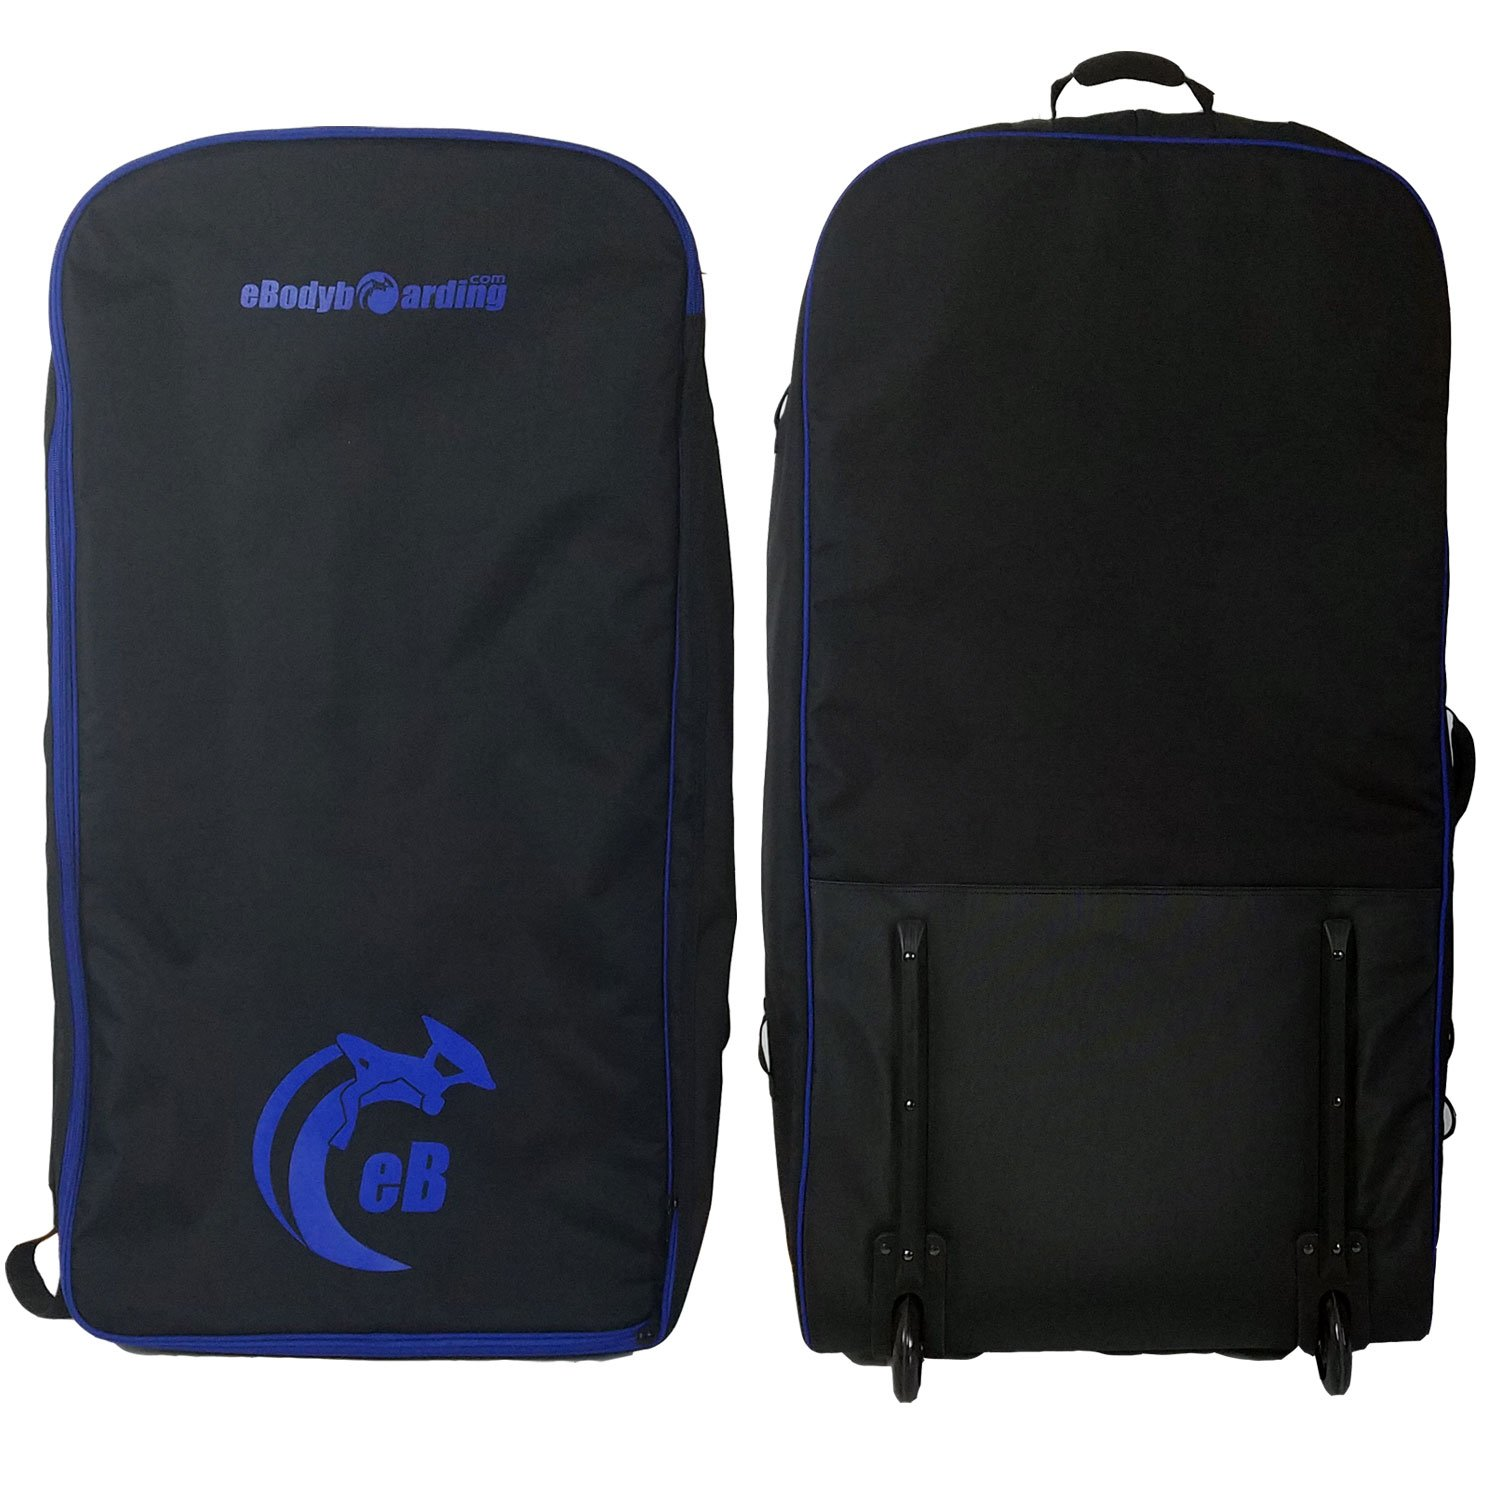 eBodyboarding Rolling EB Coffin Bodyboard Bag